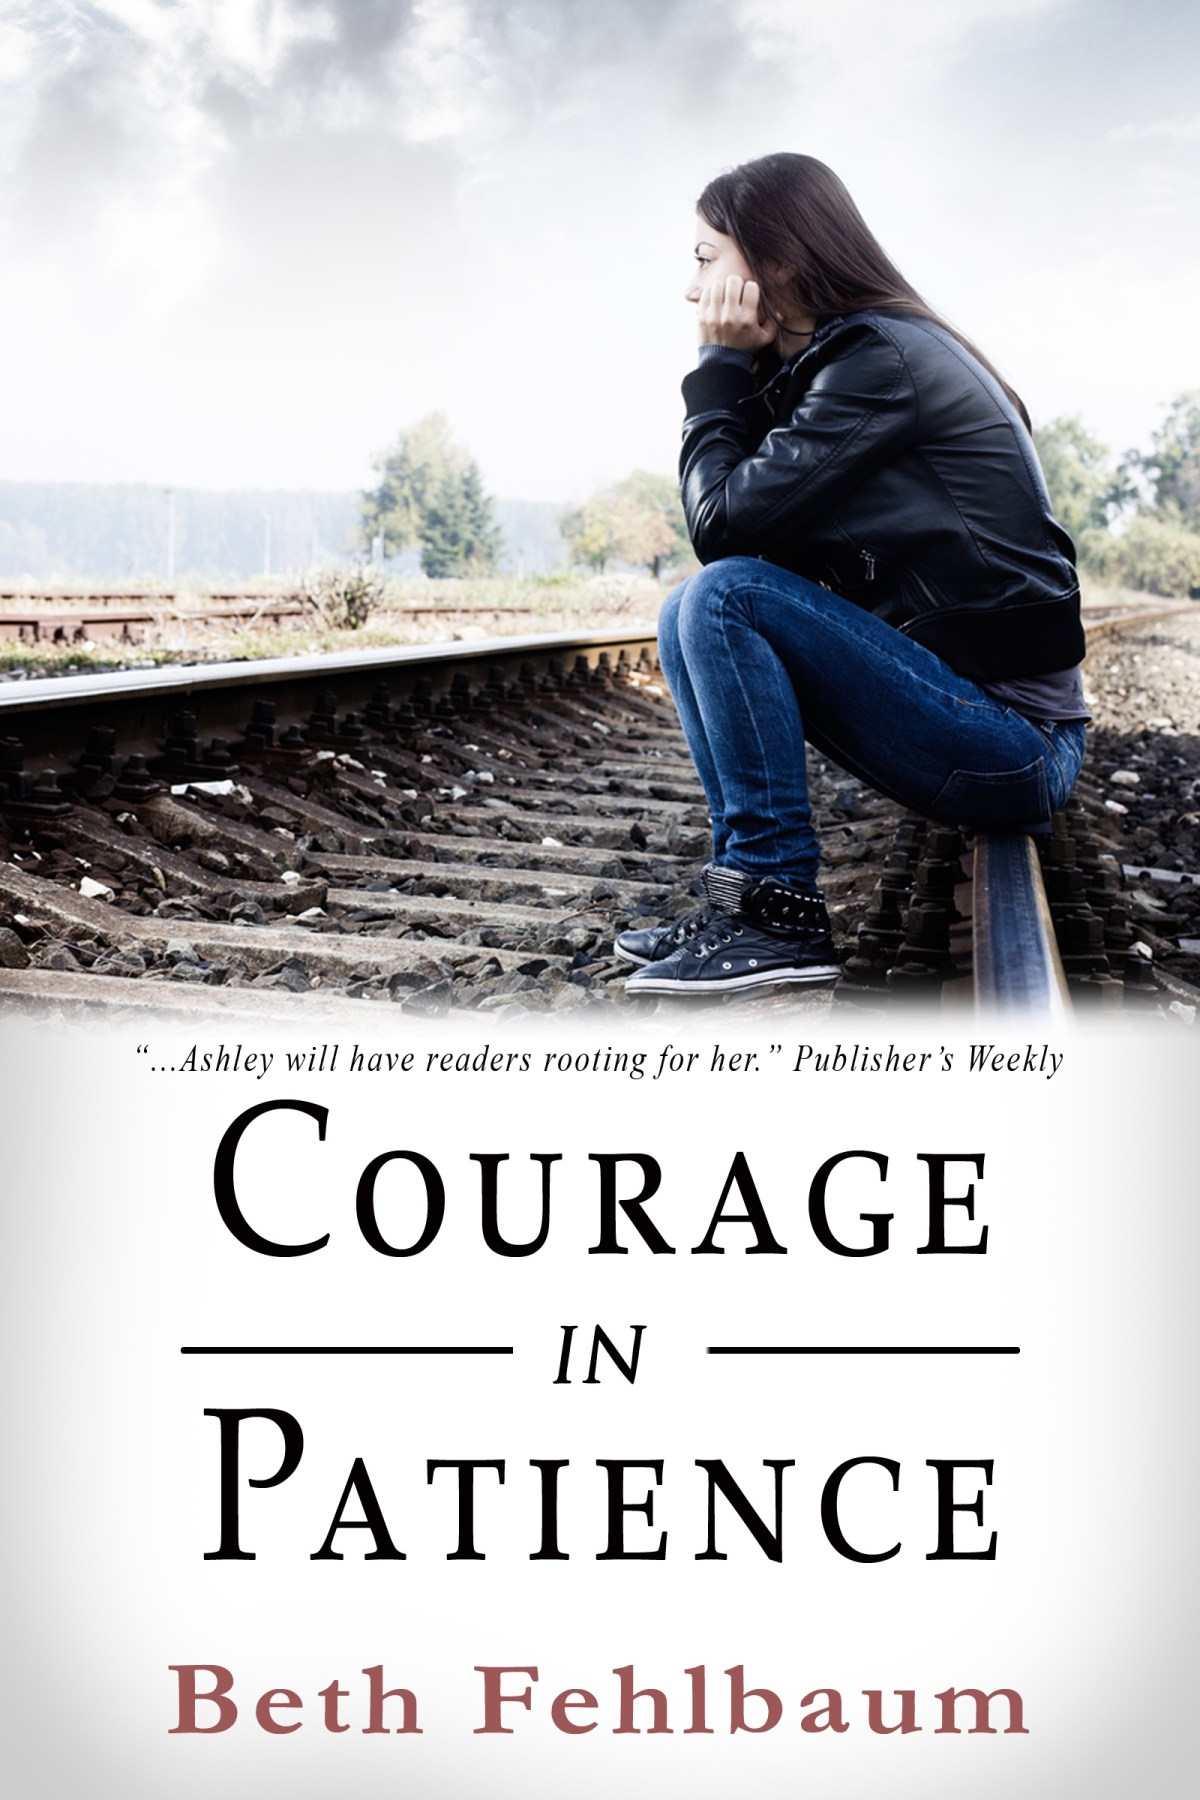 Limited time offer: COURAGE IN PATIENCE is FREE on AMAZON!